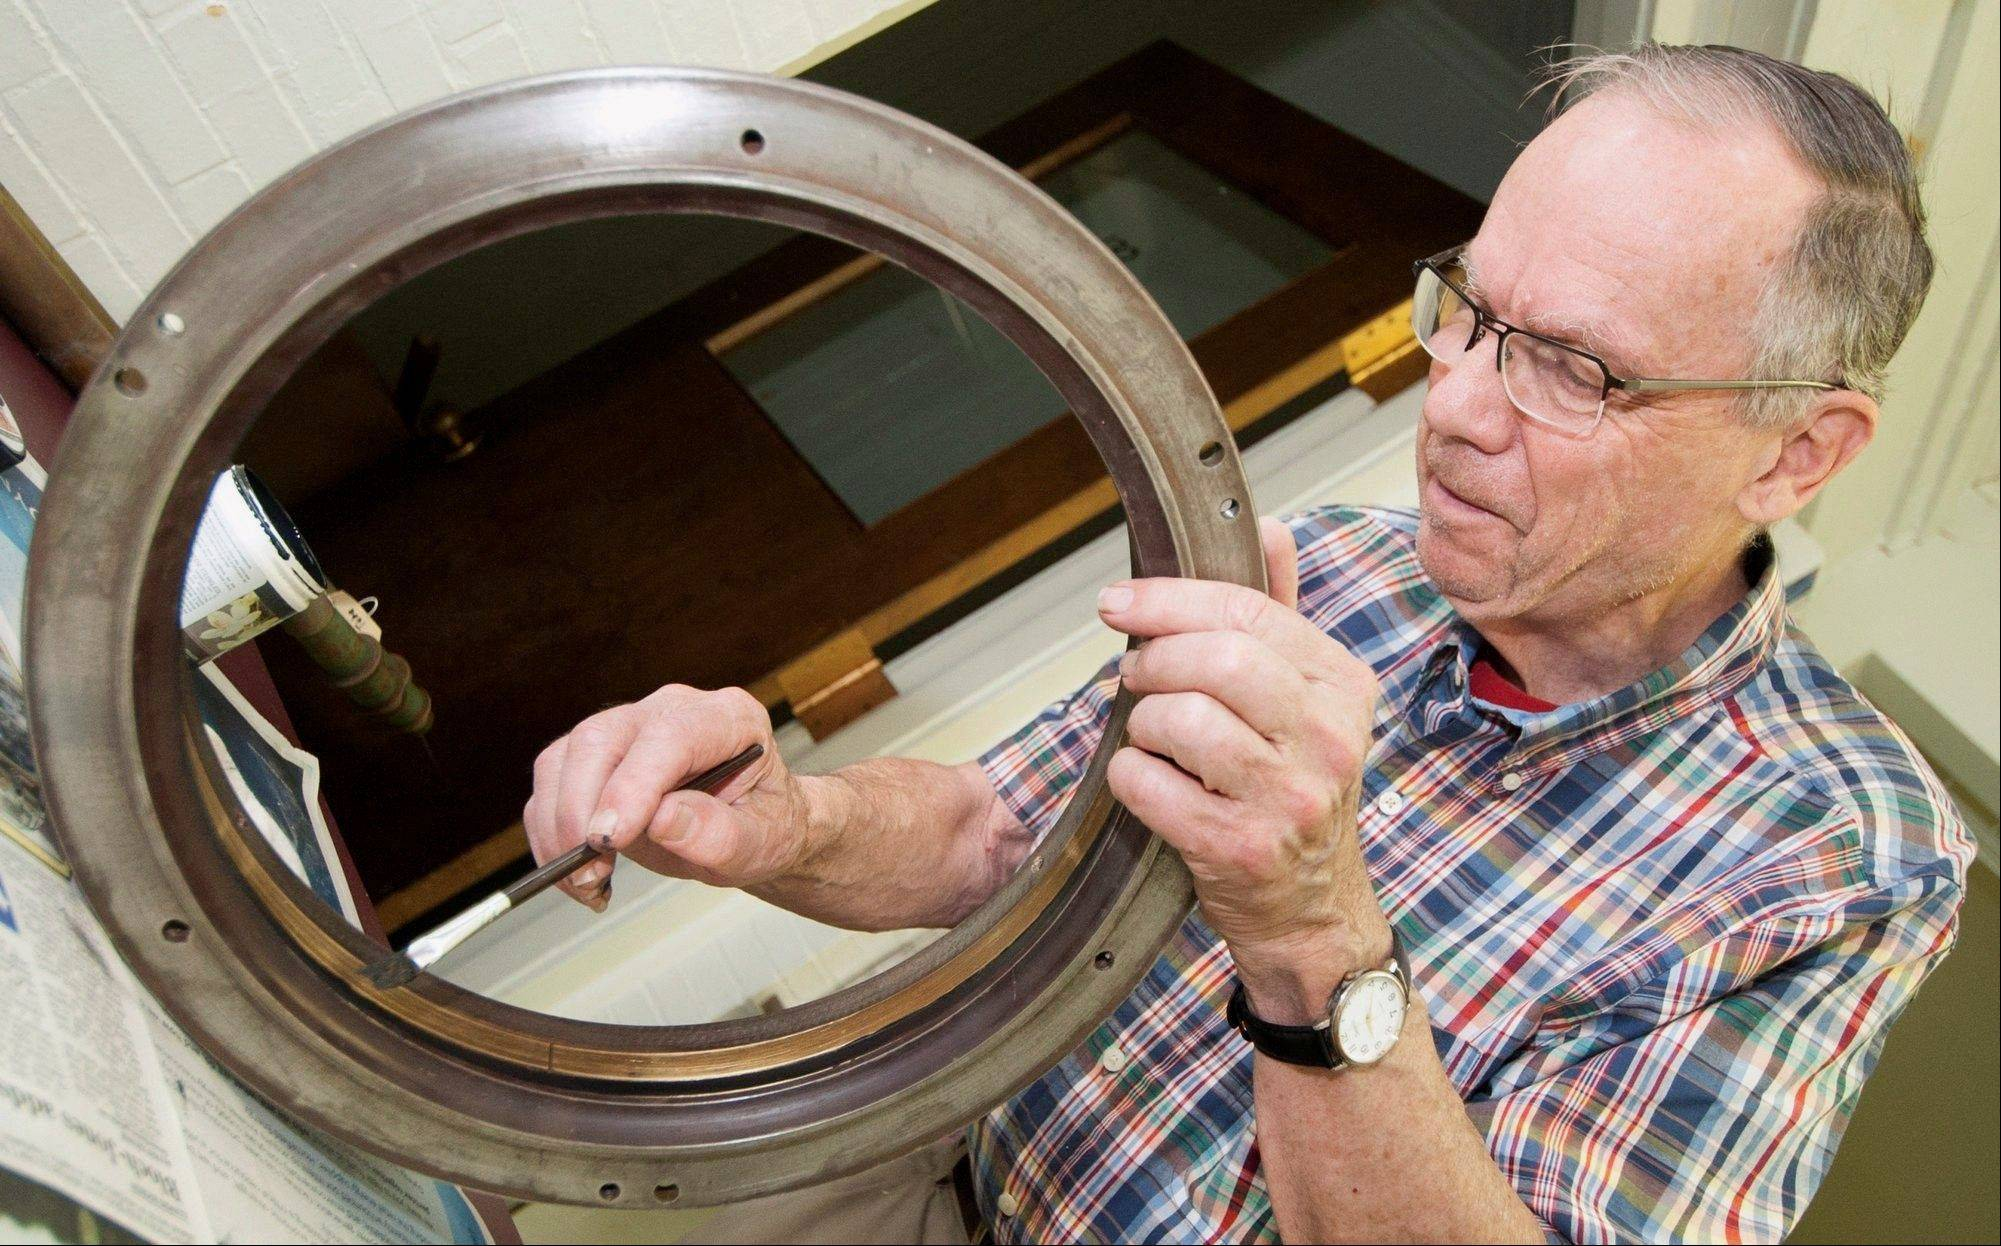 Chris Ray, owner of Ray Museum Studios in Swarthmore, Pa., paints the inside of the lens so it will not reflect light as crews take apart the historic 117-year-old telescope at the University of Illinois observatory in Urbana.